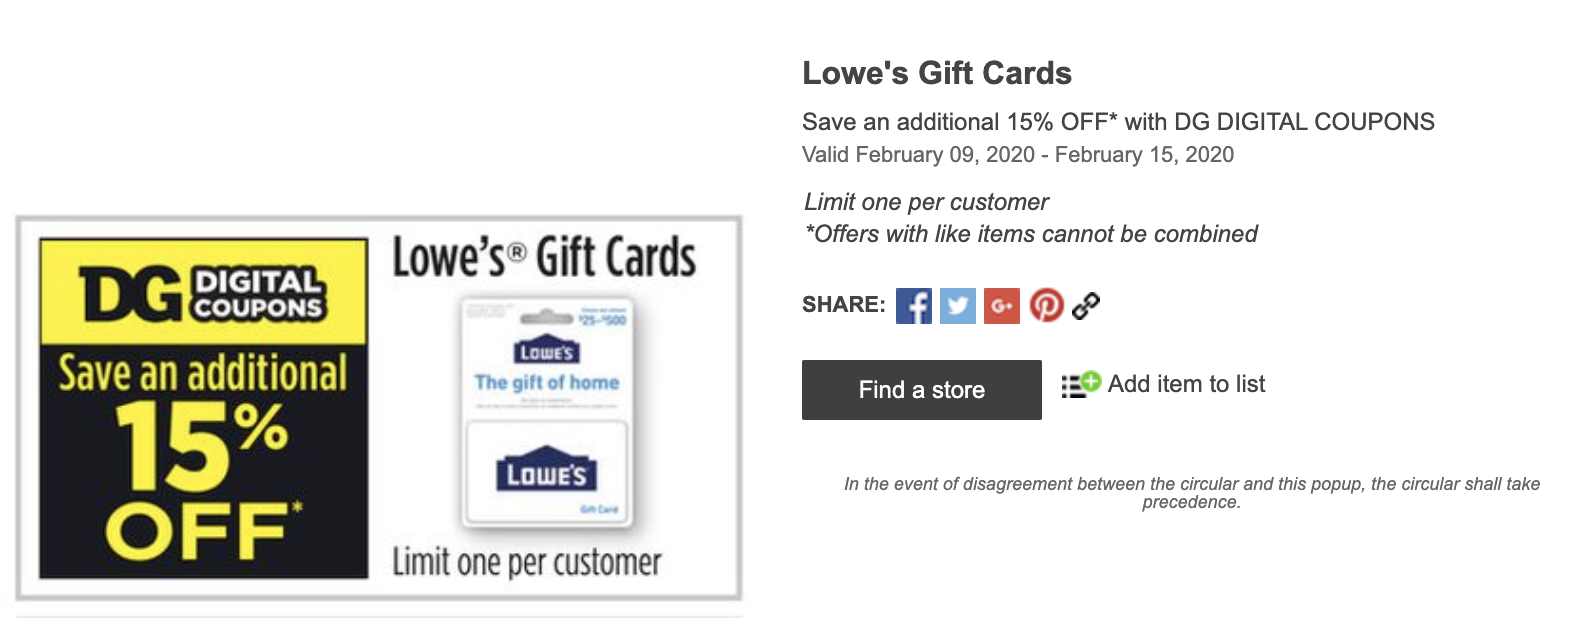 dg-lowes-gift-cards.png